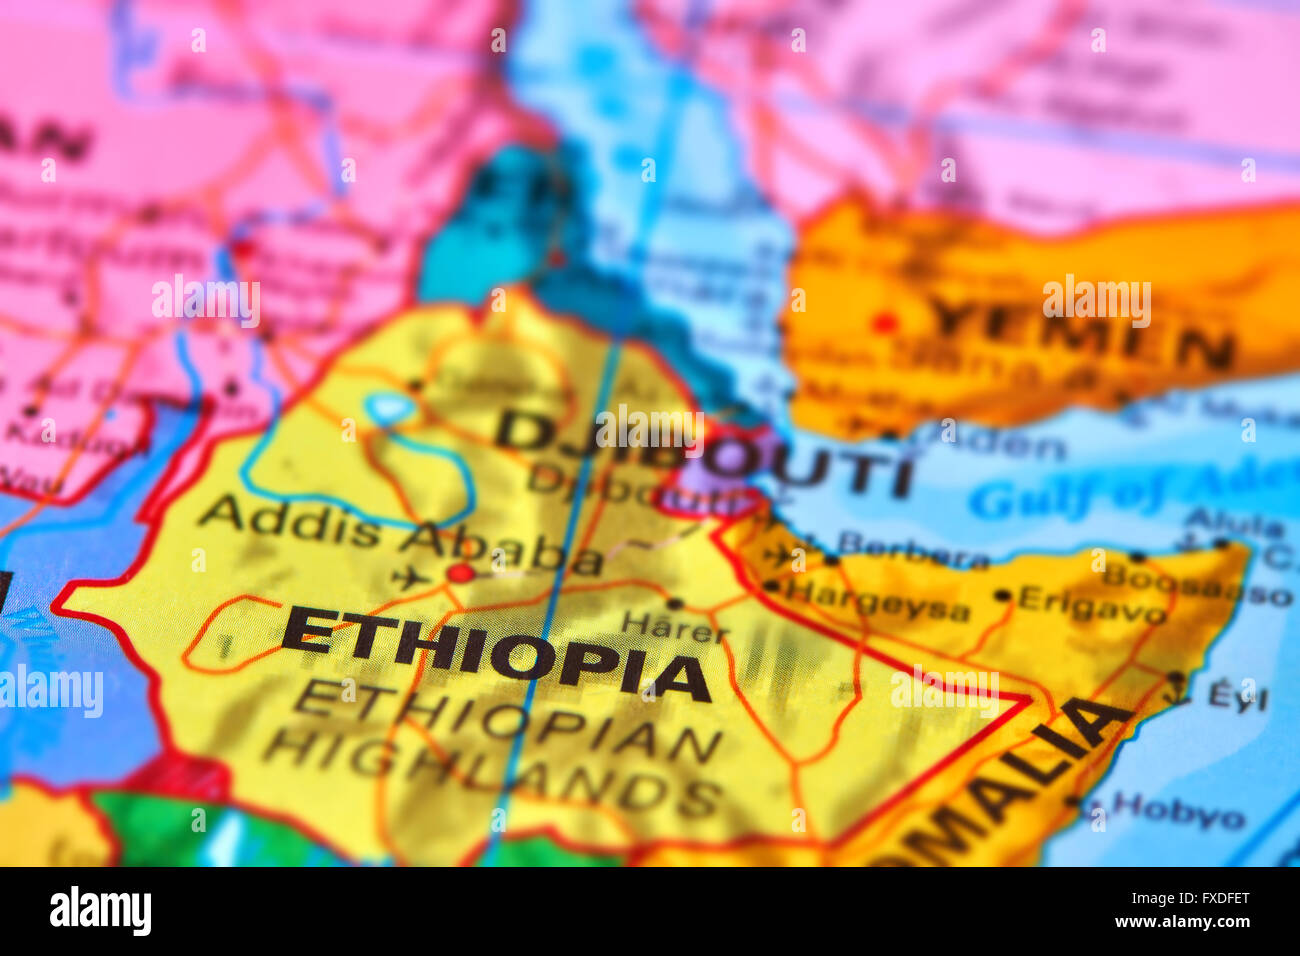 Ethiopia country in africa on the world map stock photo 102330448 ethiopia country in africa on the world map gumiabroncs Images